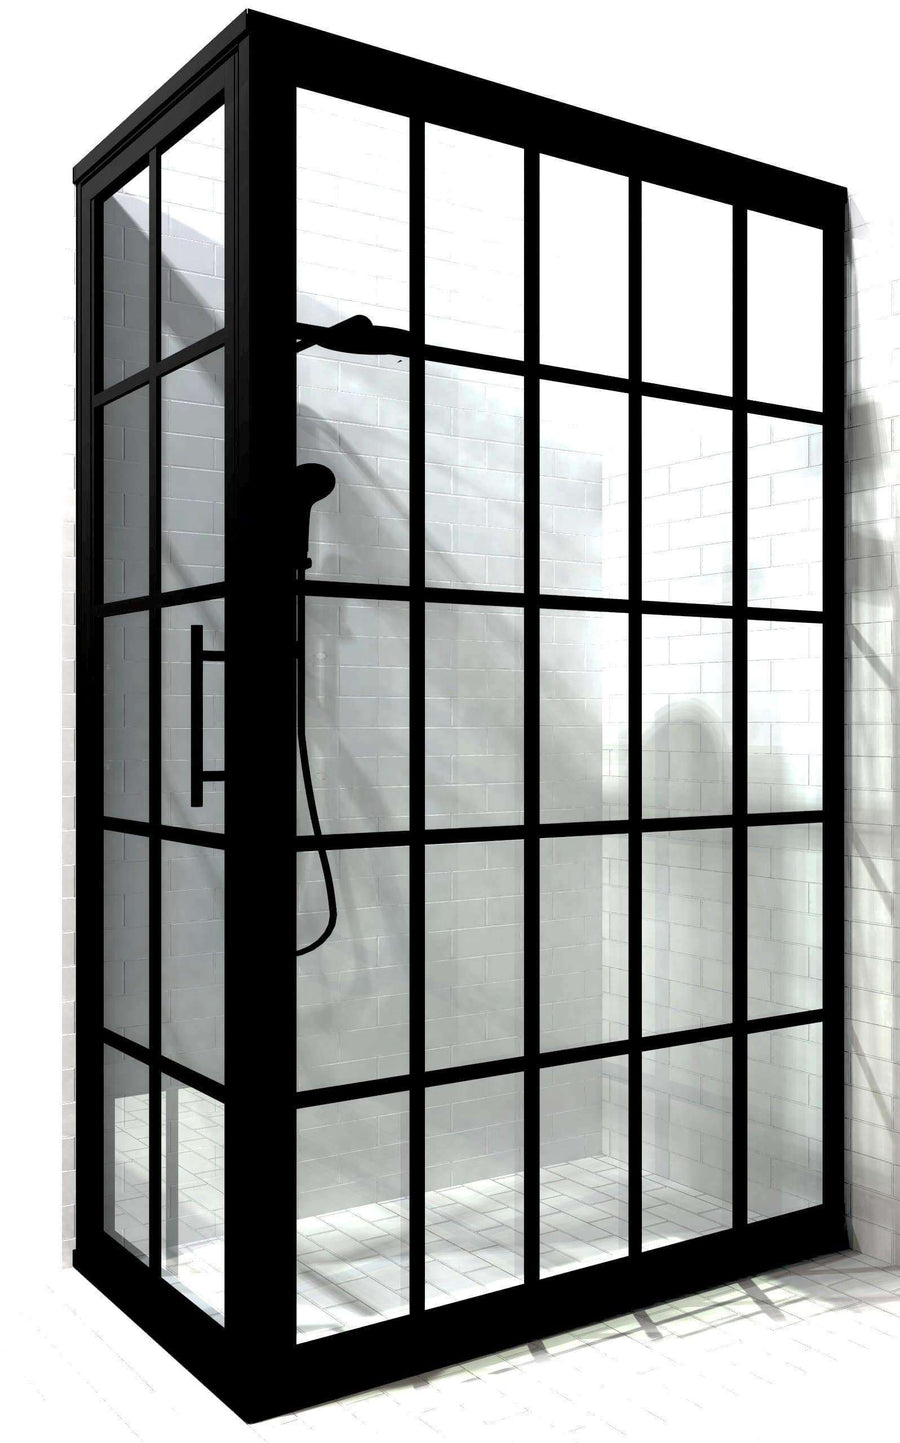 30 in x 60 in corner black grid shower door | Gridscape by Coastal Shower Doors